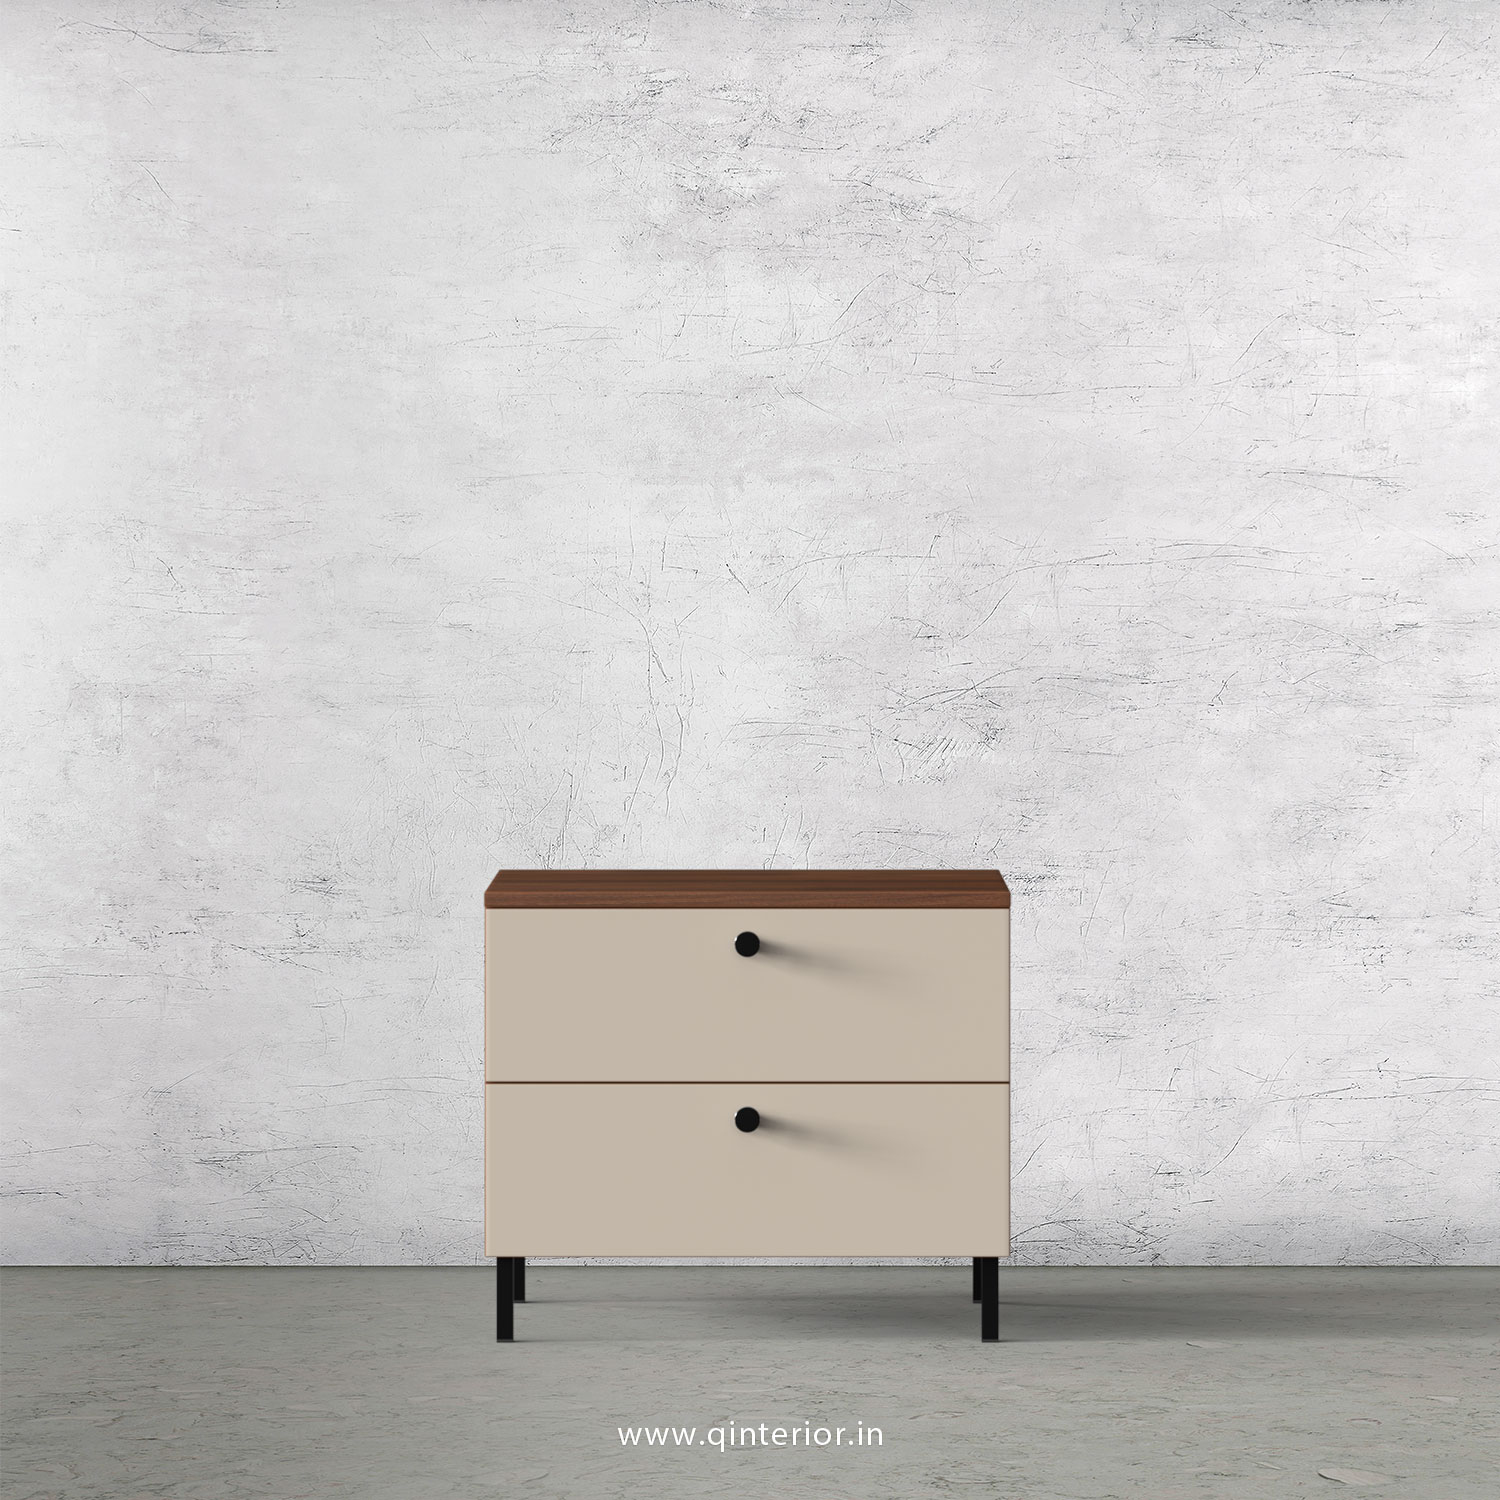 Picture of: Lambent Bed Side Table In Teak And Ceramic Finish Bst005 By Q Interior